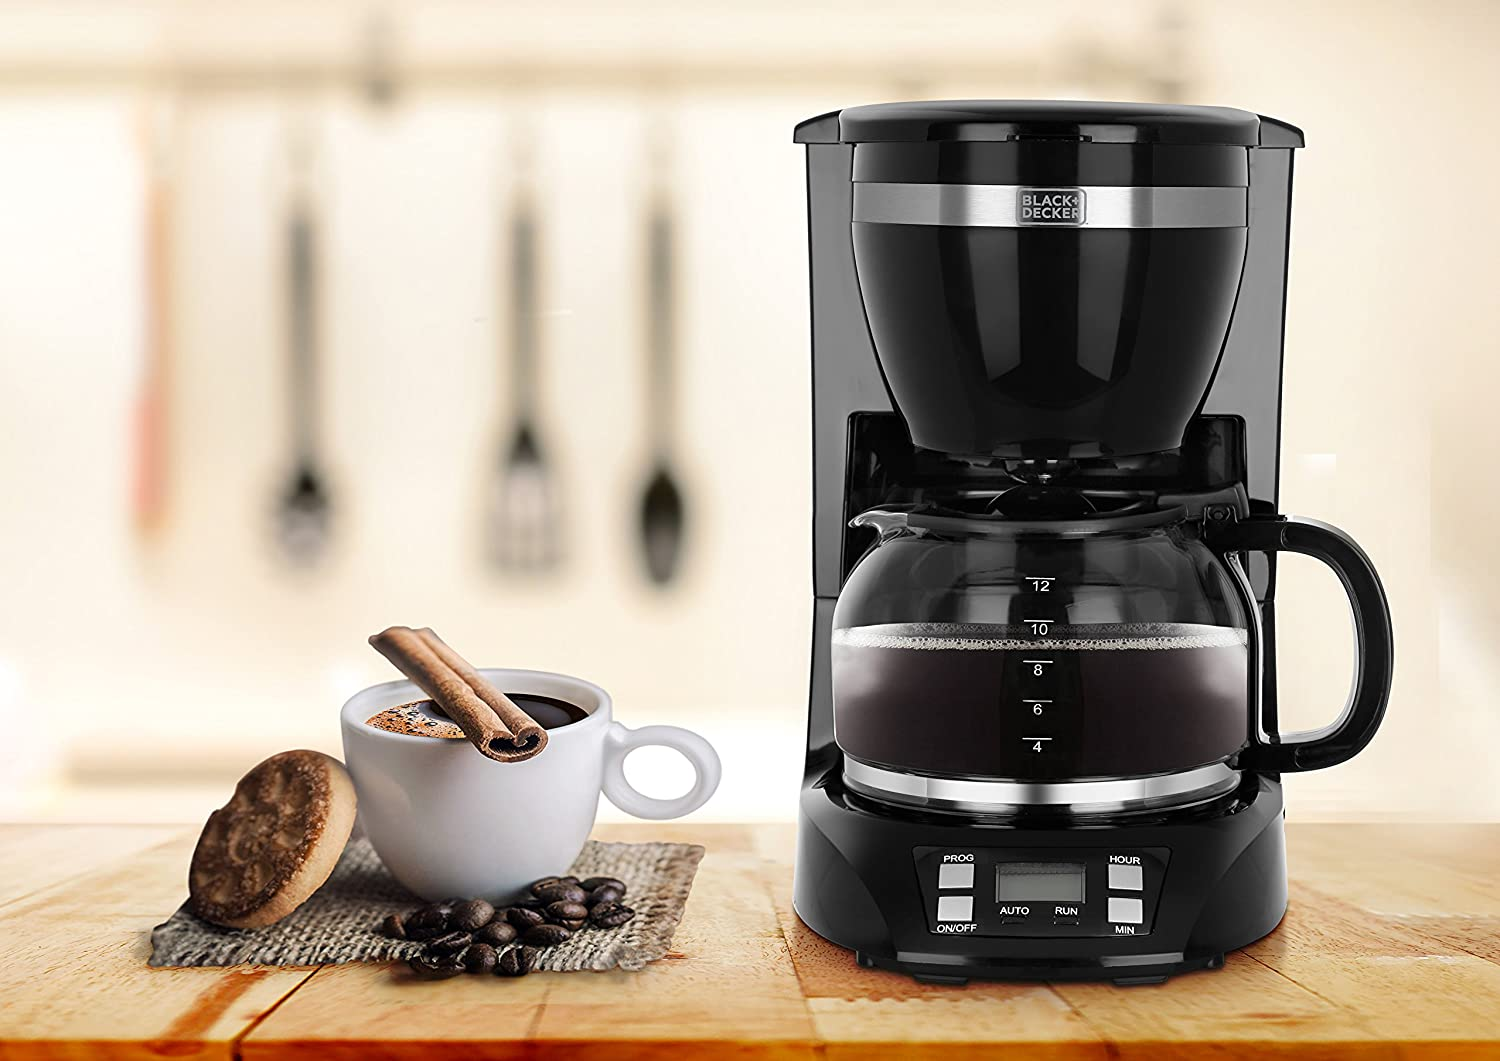 Dark + Decker BXCM1201IN Drip Coffee Maker